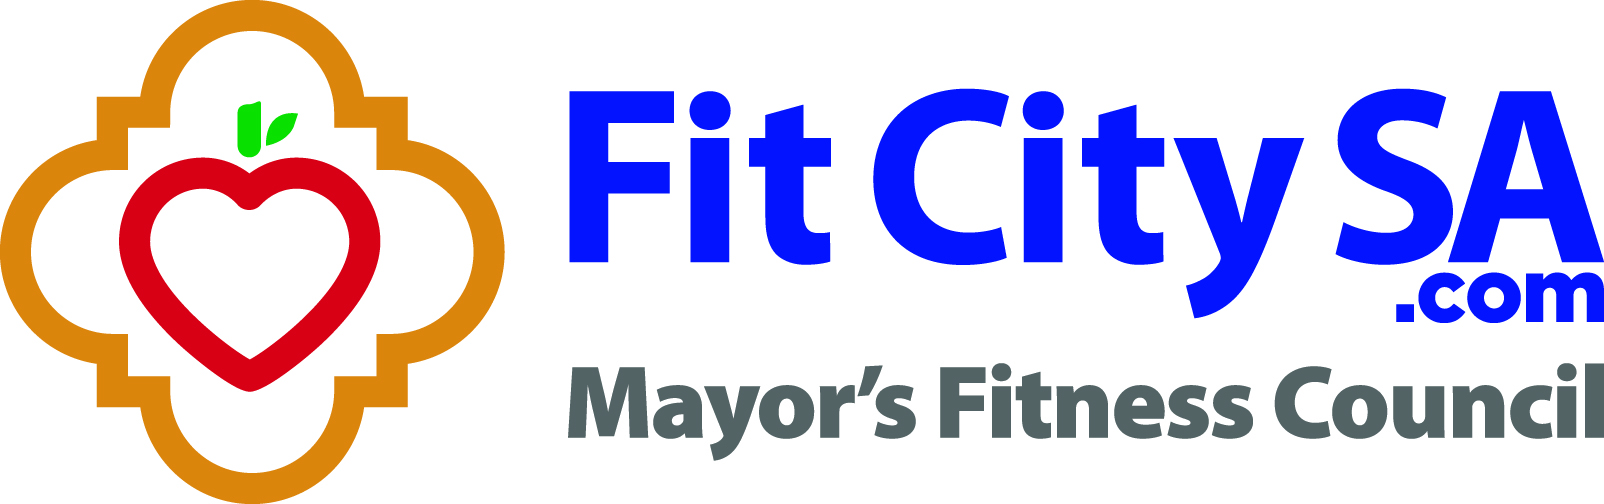 FitCitySA.com - Mayor's Fitness Council